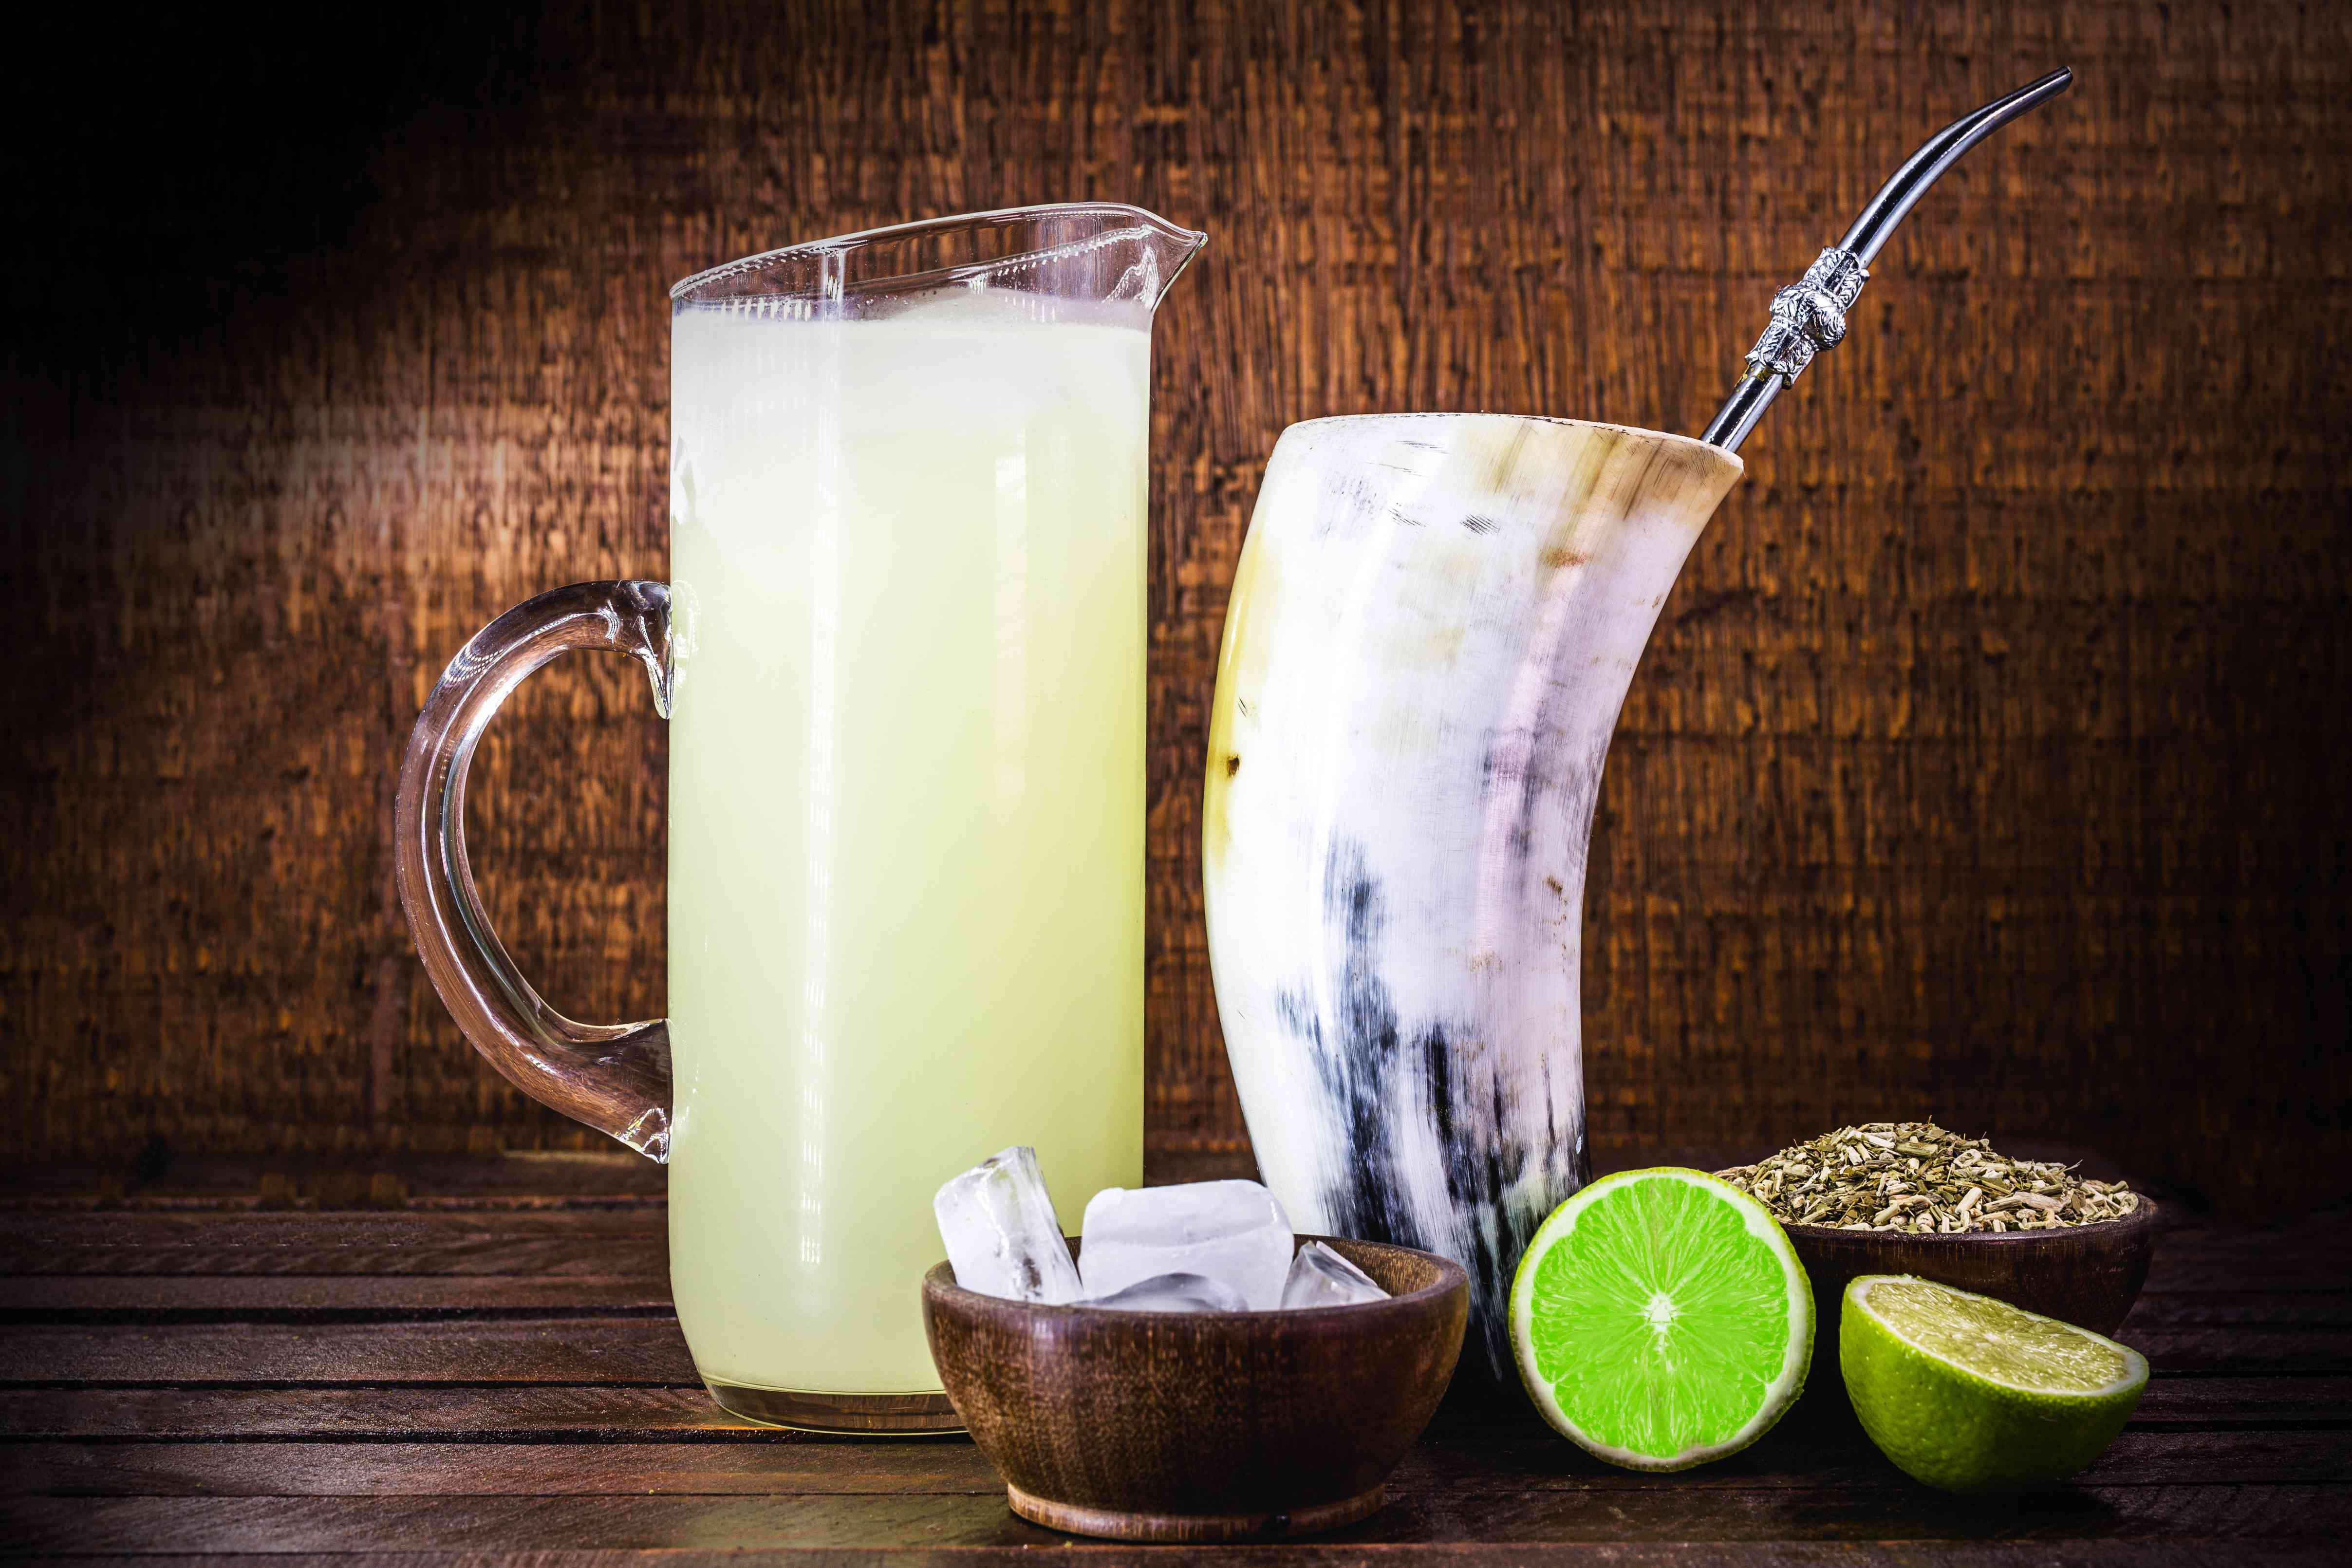 Tereré or Tererê, is a South American drink, consumed in Brazil, Argentina and Uruguay, made with the infusion of yerba mate in cold water. Drink prepared with yerba mate and lemon.